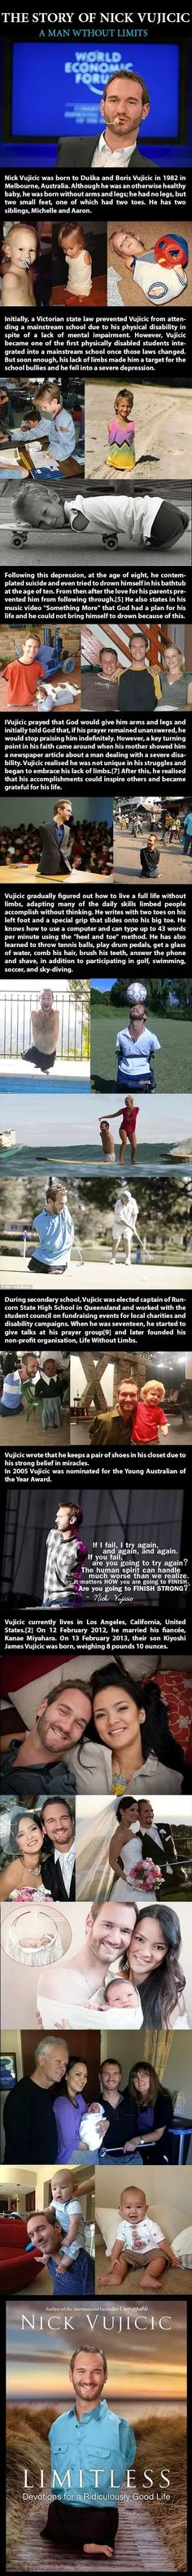 The story of Nick Vujicic ~  this it so inspirational. How can i be sad for no reason when this man has so much he could complain about yet his spirits are HIGH!